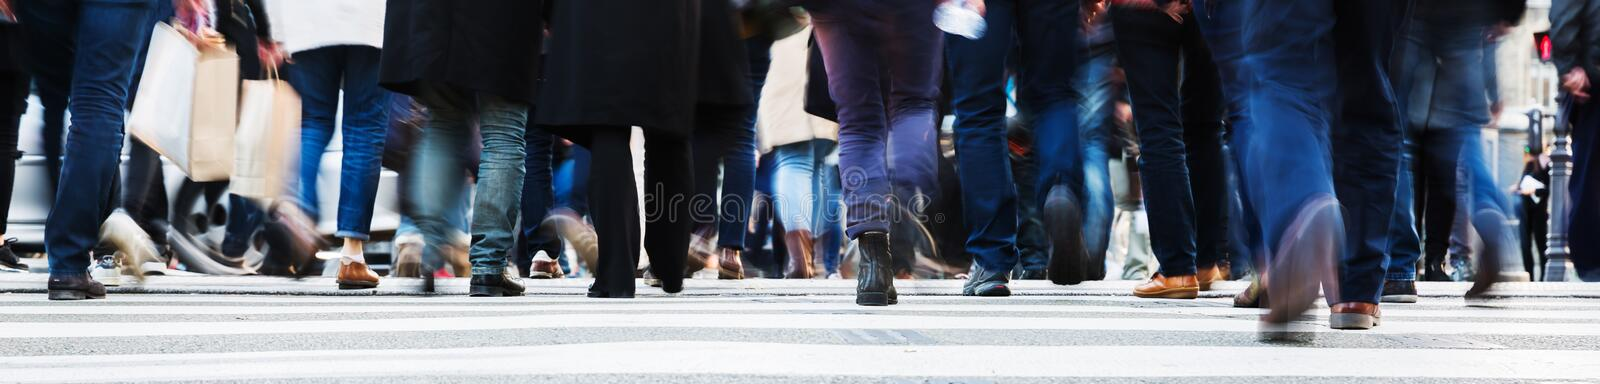 Download Crowd Of People Crossing A City Street Stock Image - Image of walking, crowd: 79510889